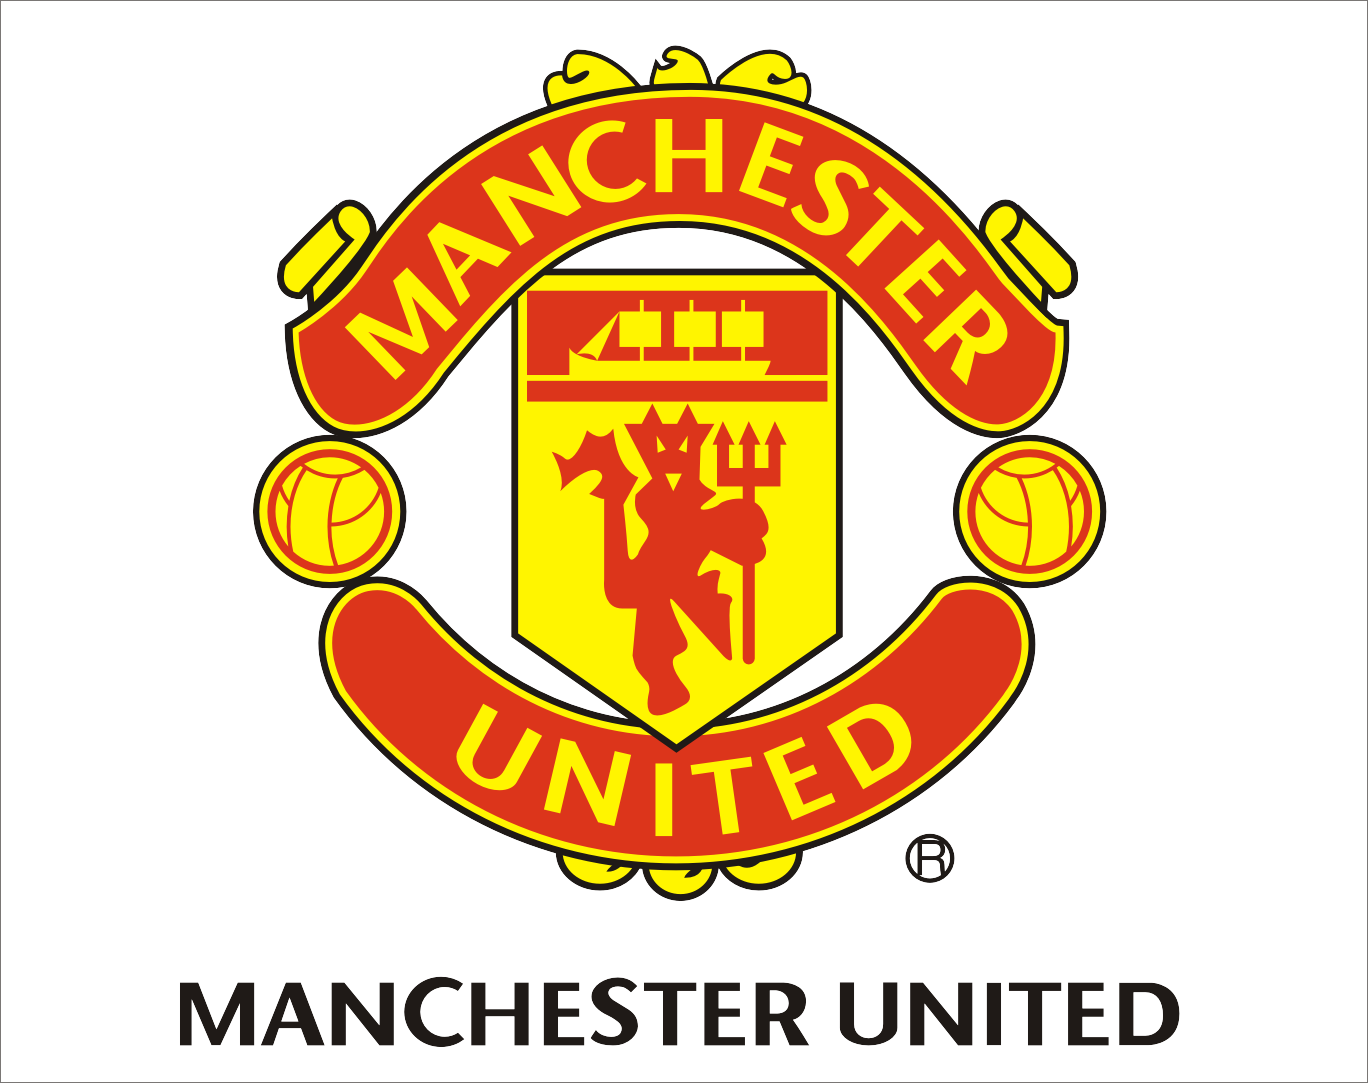 Manchester united logo design http for Design manchester